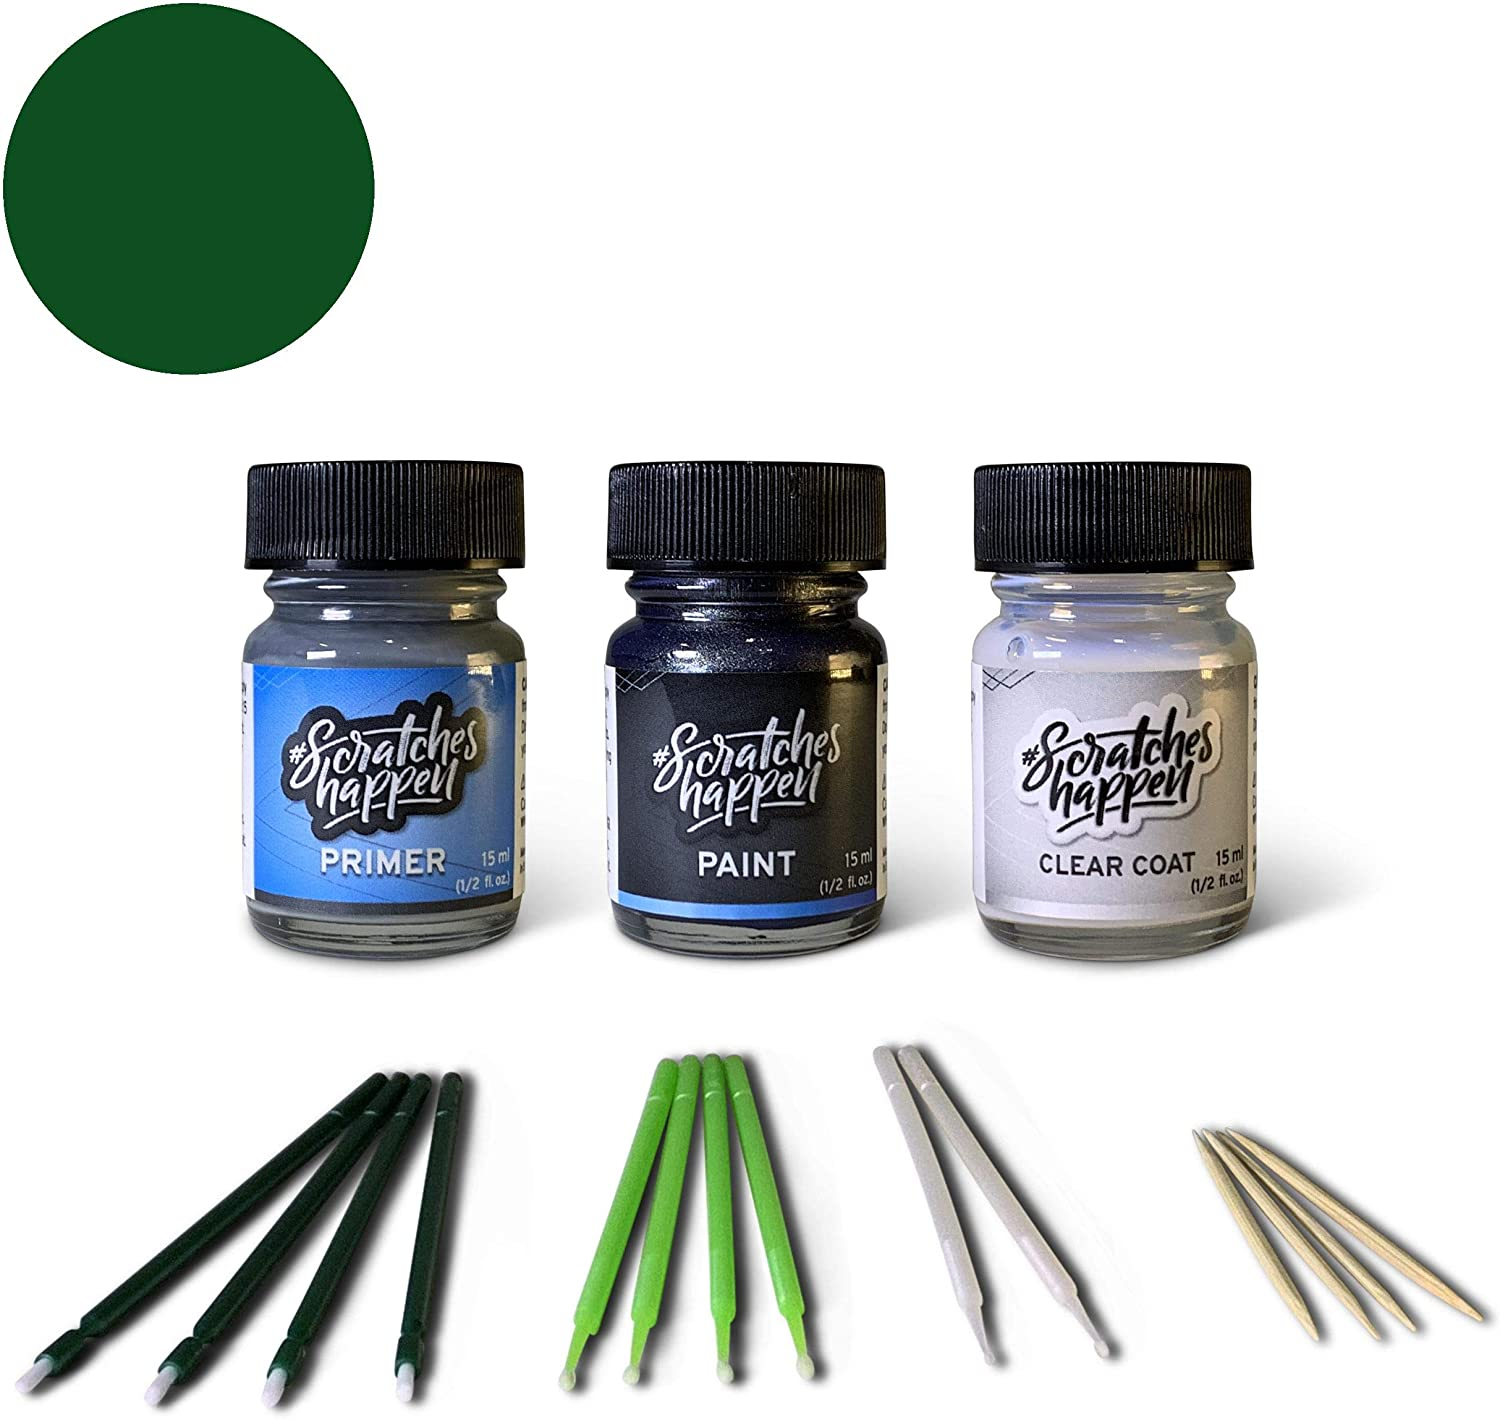 ScratchesHappen Exact-Match Touch Up Paint Kit Compatible with BMW Boston Green (275) - Bottle, Preferred